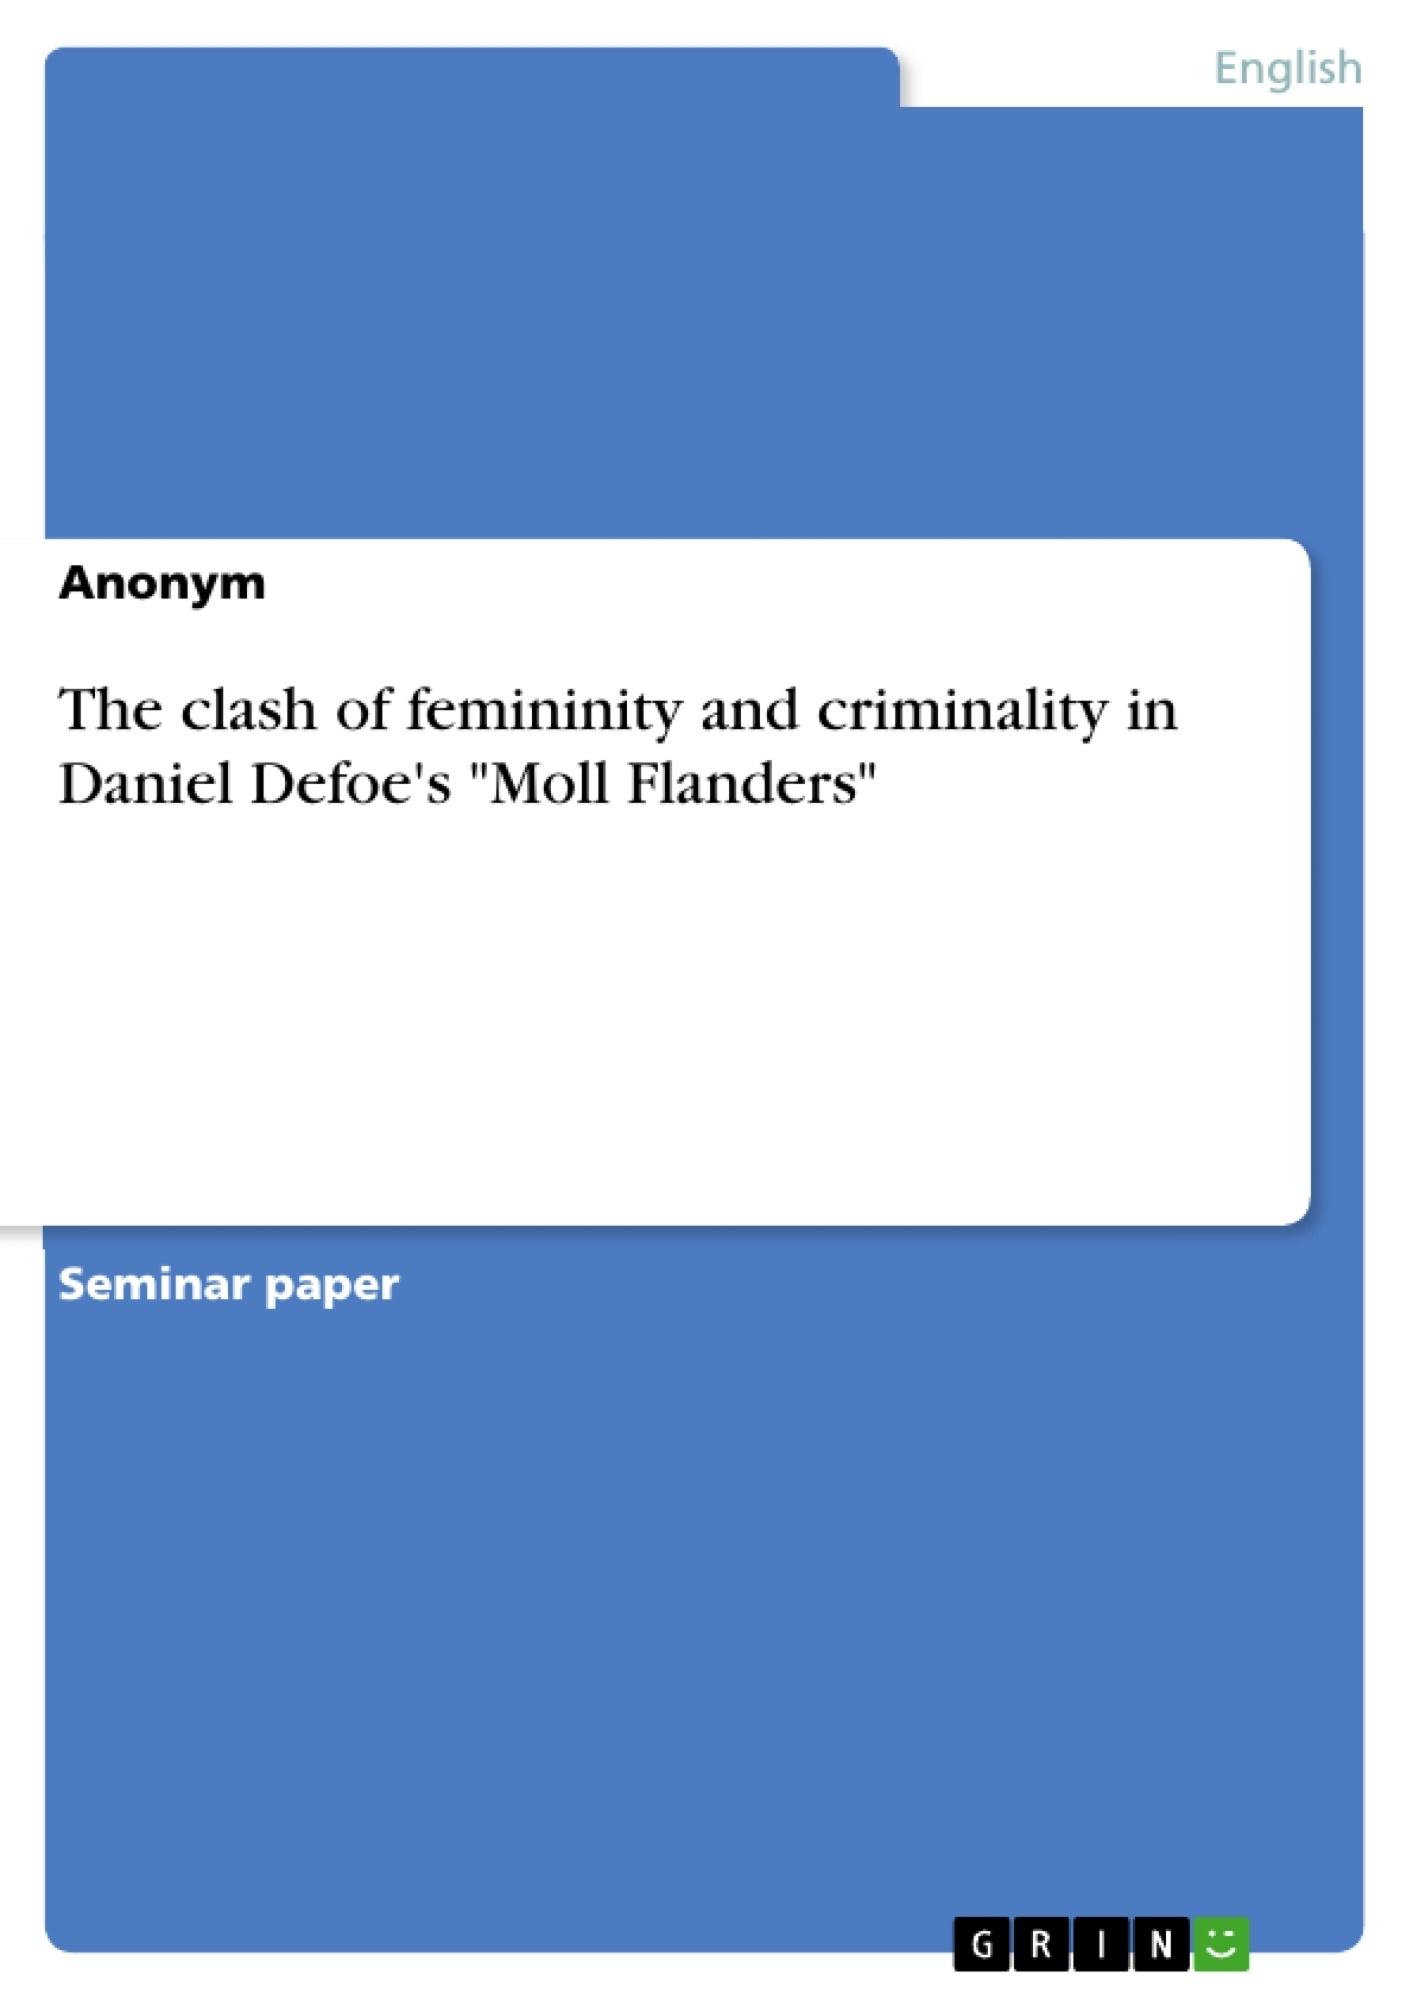 Human Trafficking Argumentative Essay Upload Your Own Papers Earn Money And Win An Iphone X Essay Writing Apa Format also Find Essays Online The Clash Of Femininity And Criminality In Daniel Defoes Moll  Merchant Of Venice Critical Essay